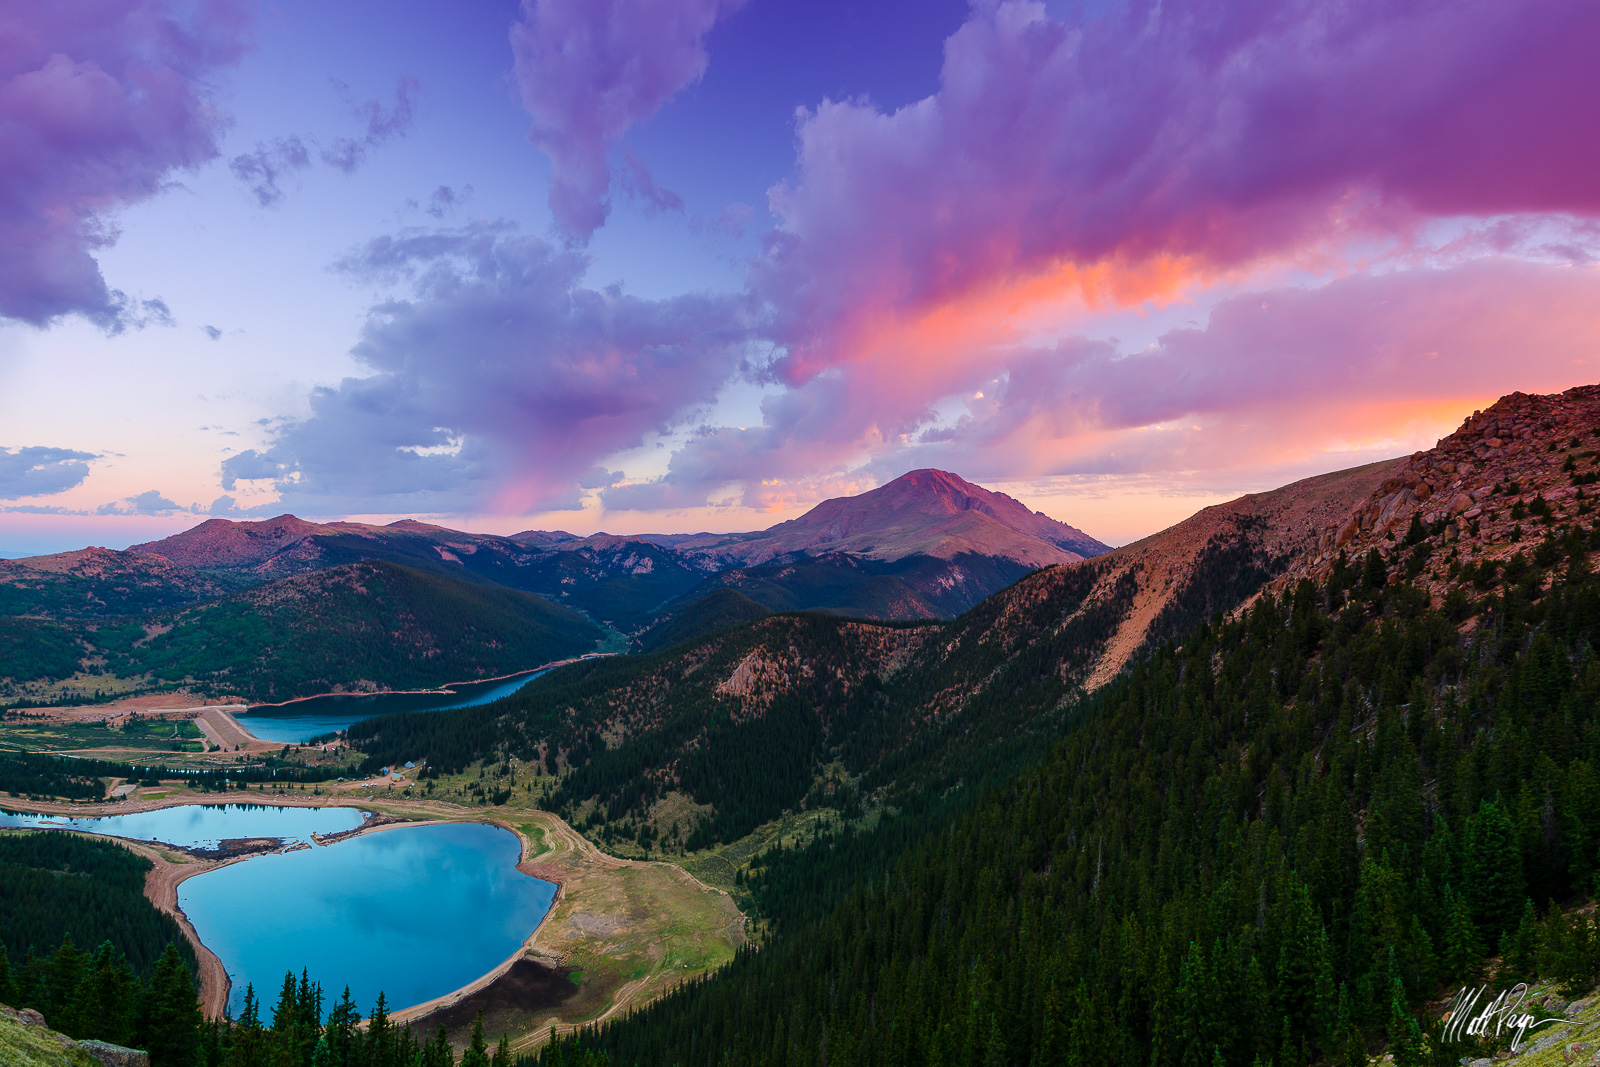 14er, Almagre Mountain, Colorado, Colorado Springs, Front Range, Lake, Lakes, Landscape, Matt Payne Photography, McReynolds Reservoir, Mountain, Pikes Peak, Sunrise, Landscape Photography, photo